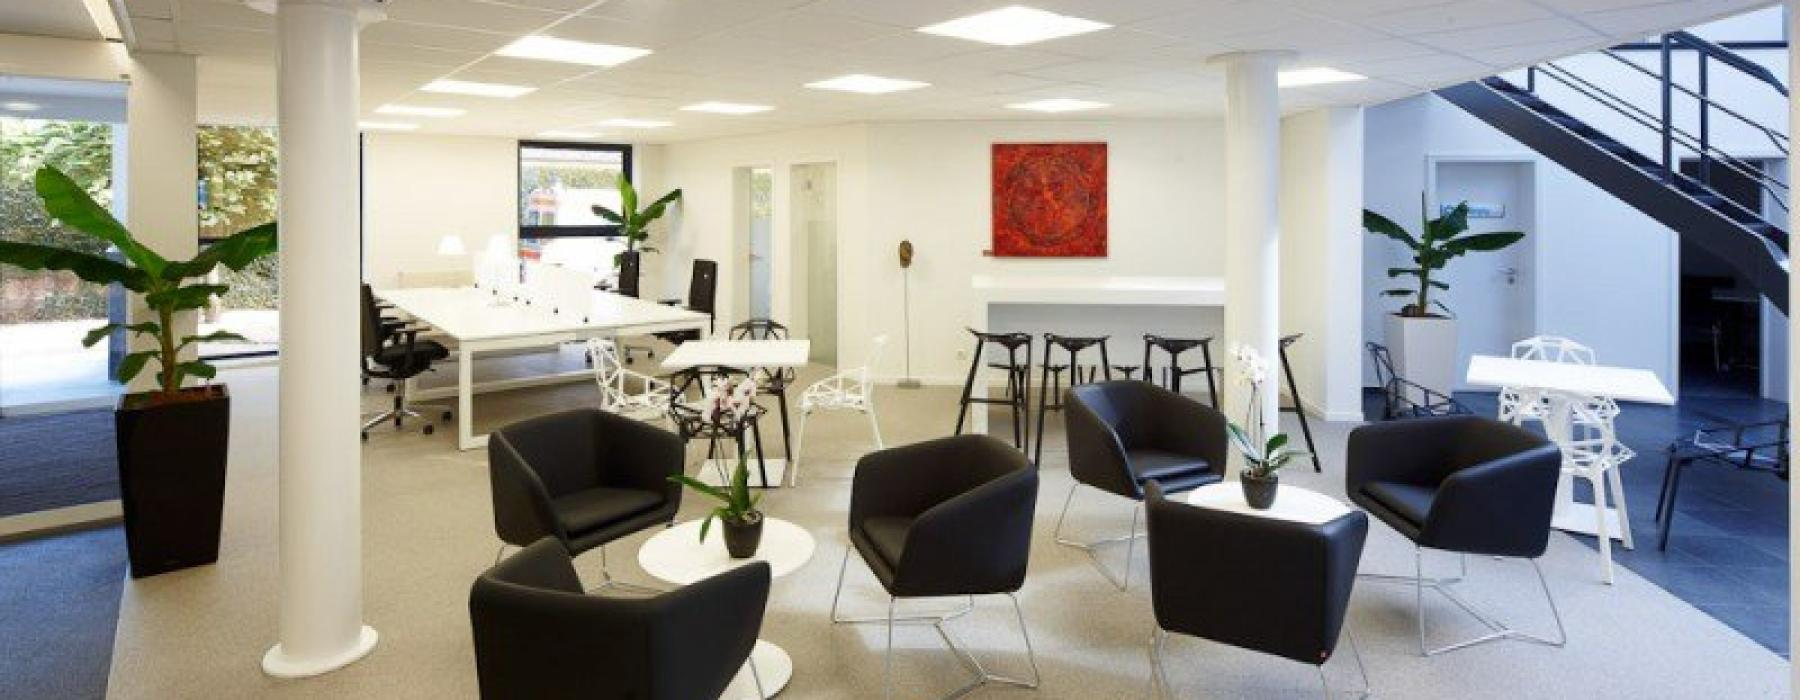 Meeting Room And Virtual Office At Turnhout Rubensstraat